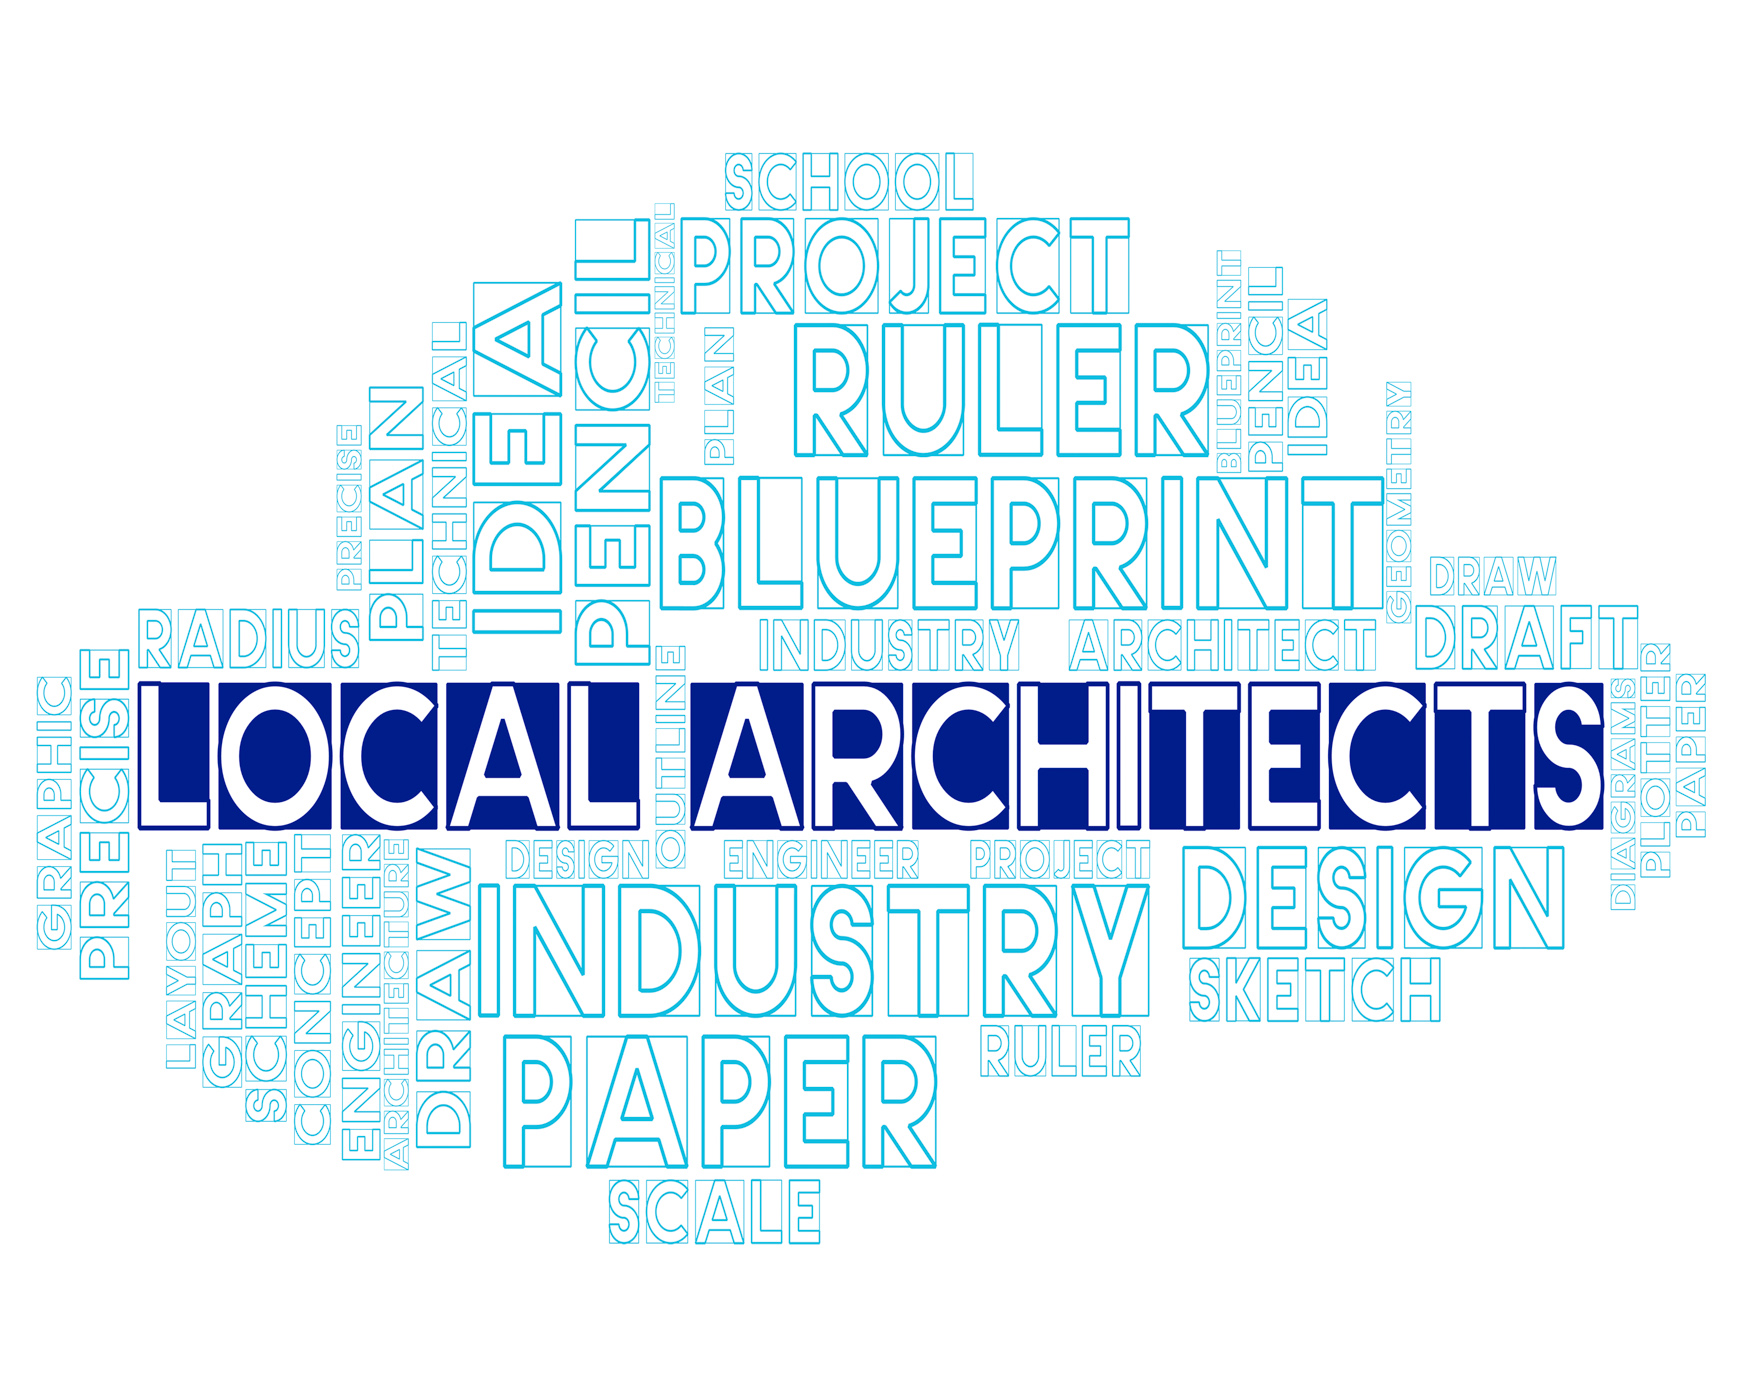 Local Architects Represents Building Draftsman And Career